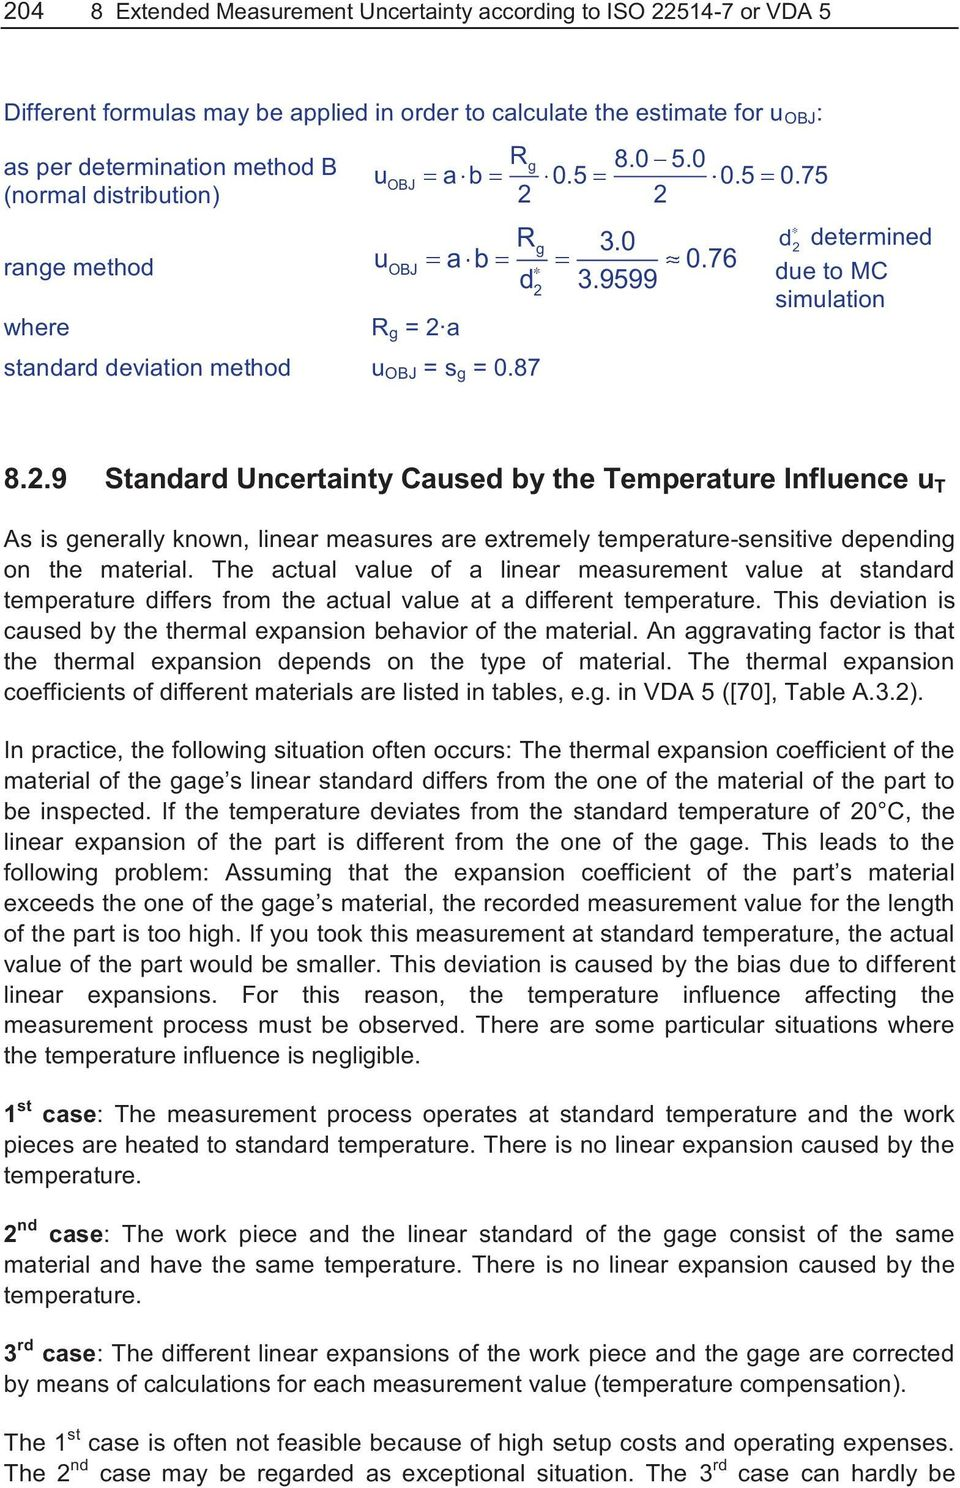 .9 Standard Uncertainty Cased by the Temperatre Inflence T As is generally known, linear measres are extremely temperatre-sensitive depending on the material.